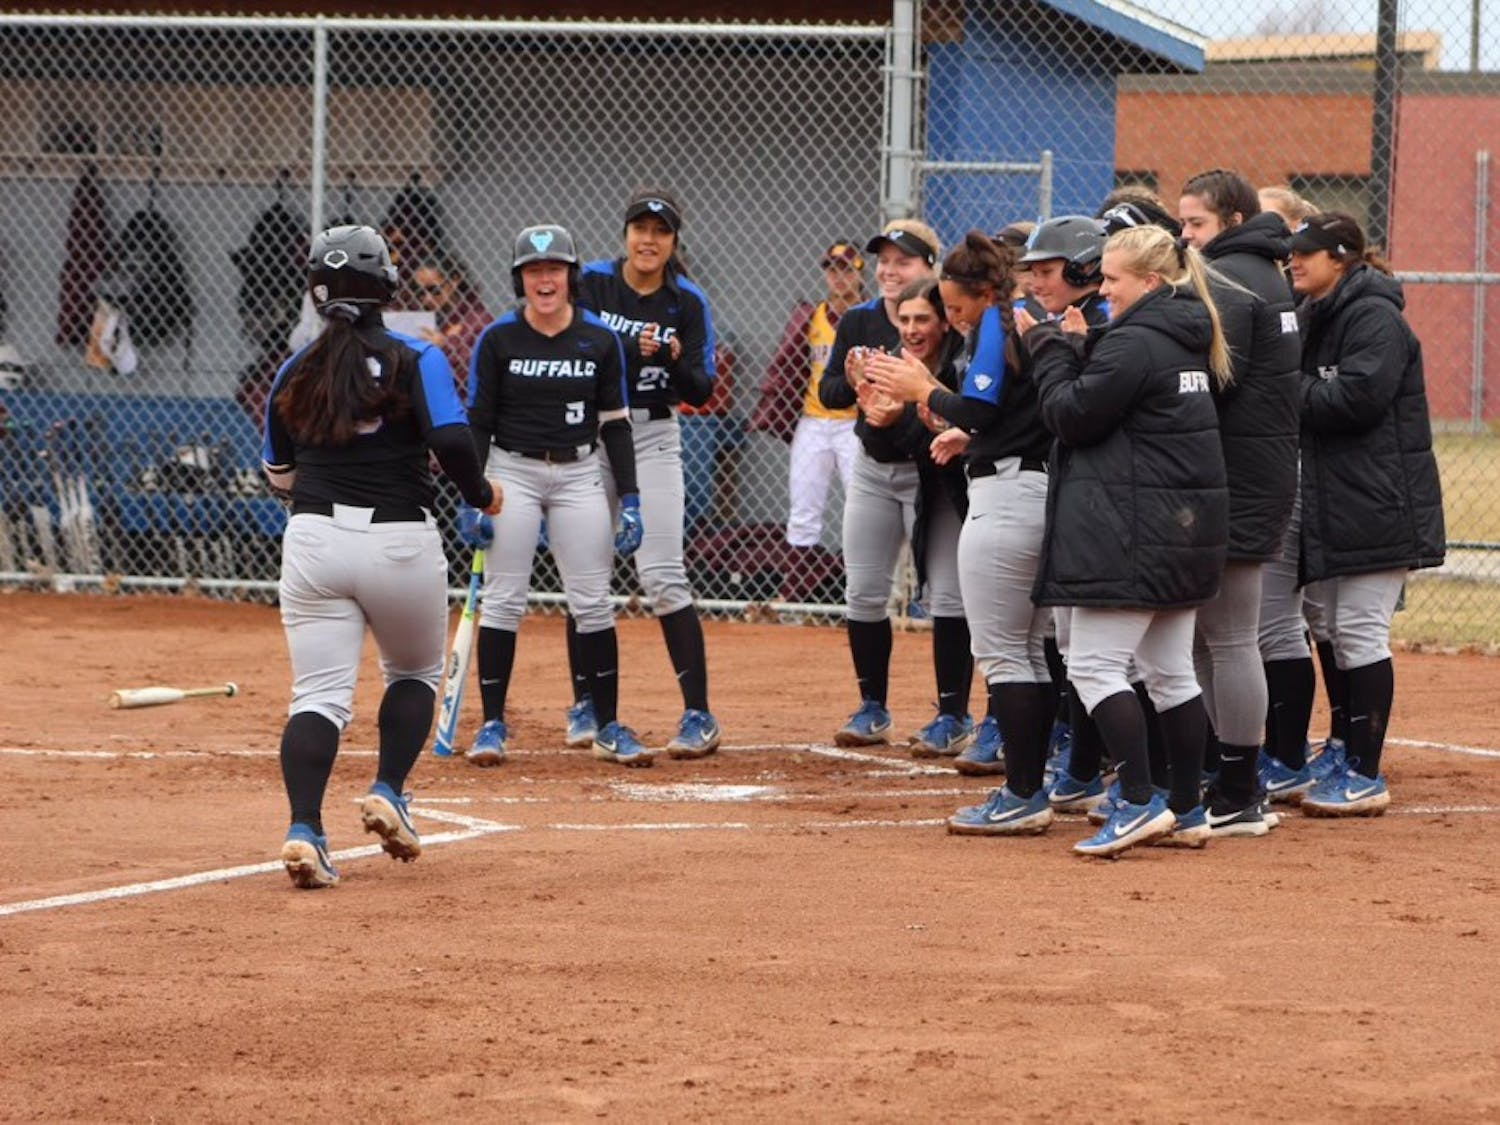 Sophomore left fielder Anna Aguon trots toward home after a home run. Aguon went 3-5 with two RBIs during the Bulls' 16-6 win against Akron.